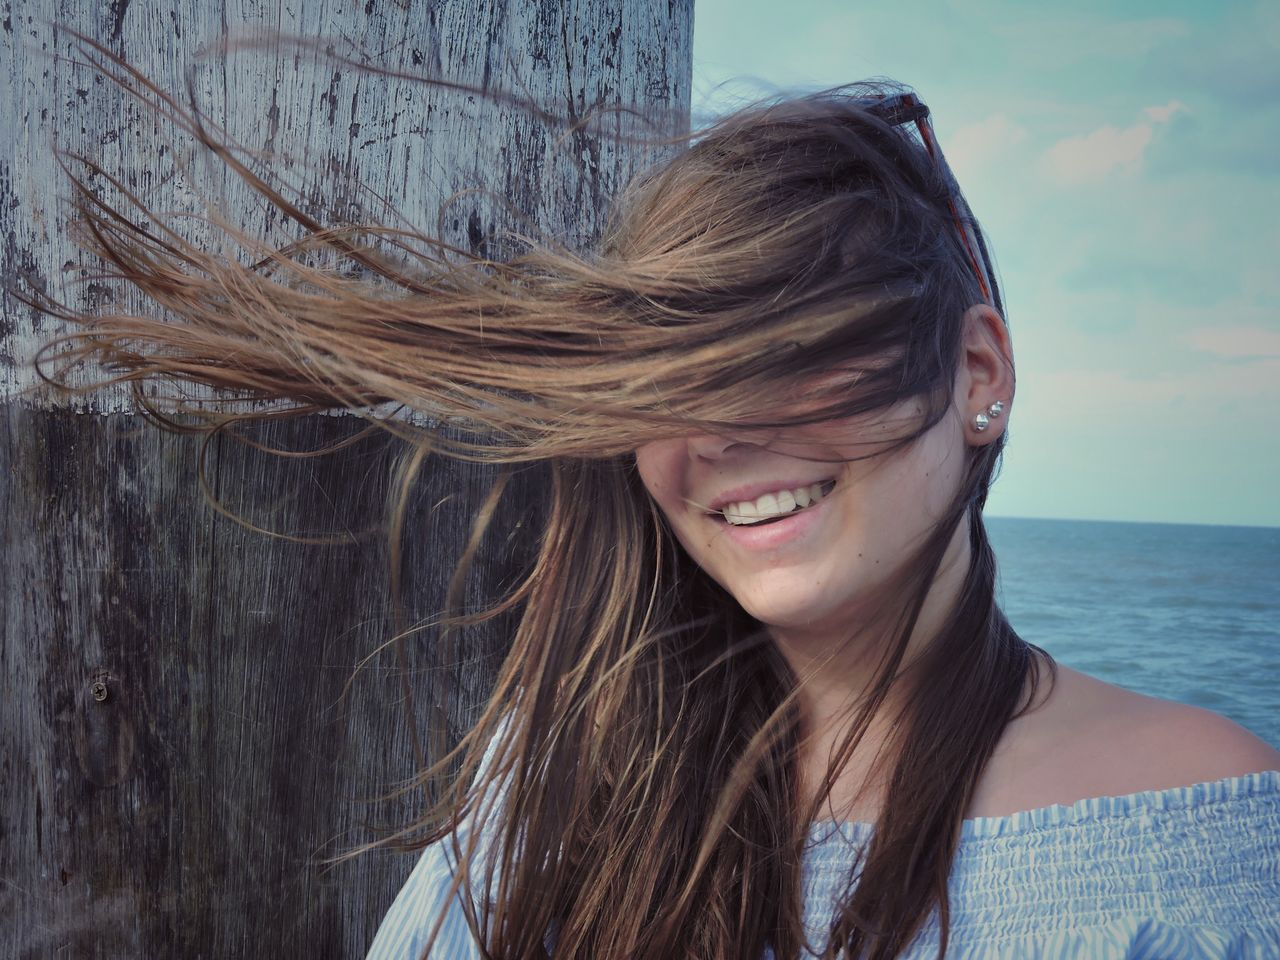 Young Women Long Hair Portrait One Person Smiling Real People Headshot Young Adult Beautiful Woman Happiness Close-up Outdoors Day Ocean Girl Blowing Wind Windy Hair EyeEm Best Shots Water Leisure Activity Lifestyle Freedom Natural The Portraitist - 2017 EyeEm Awards